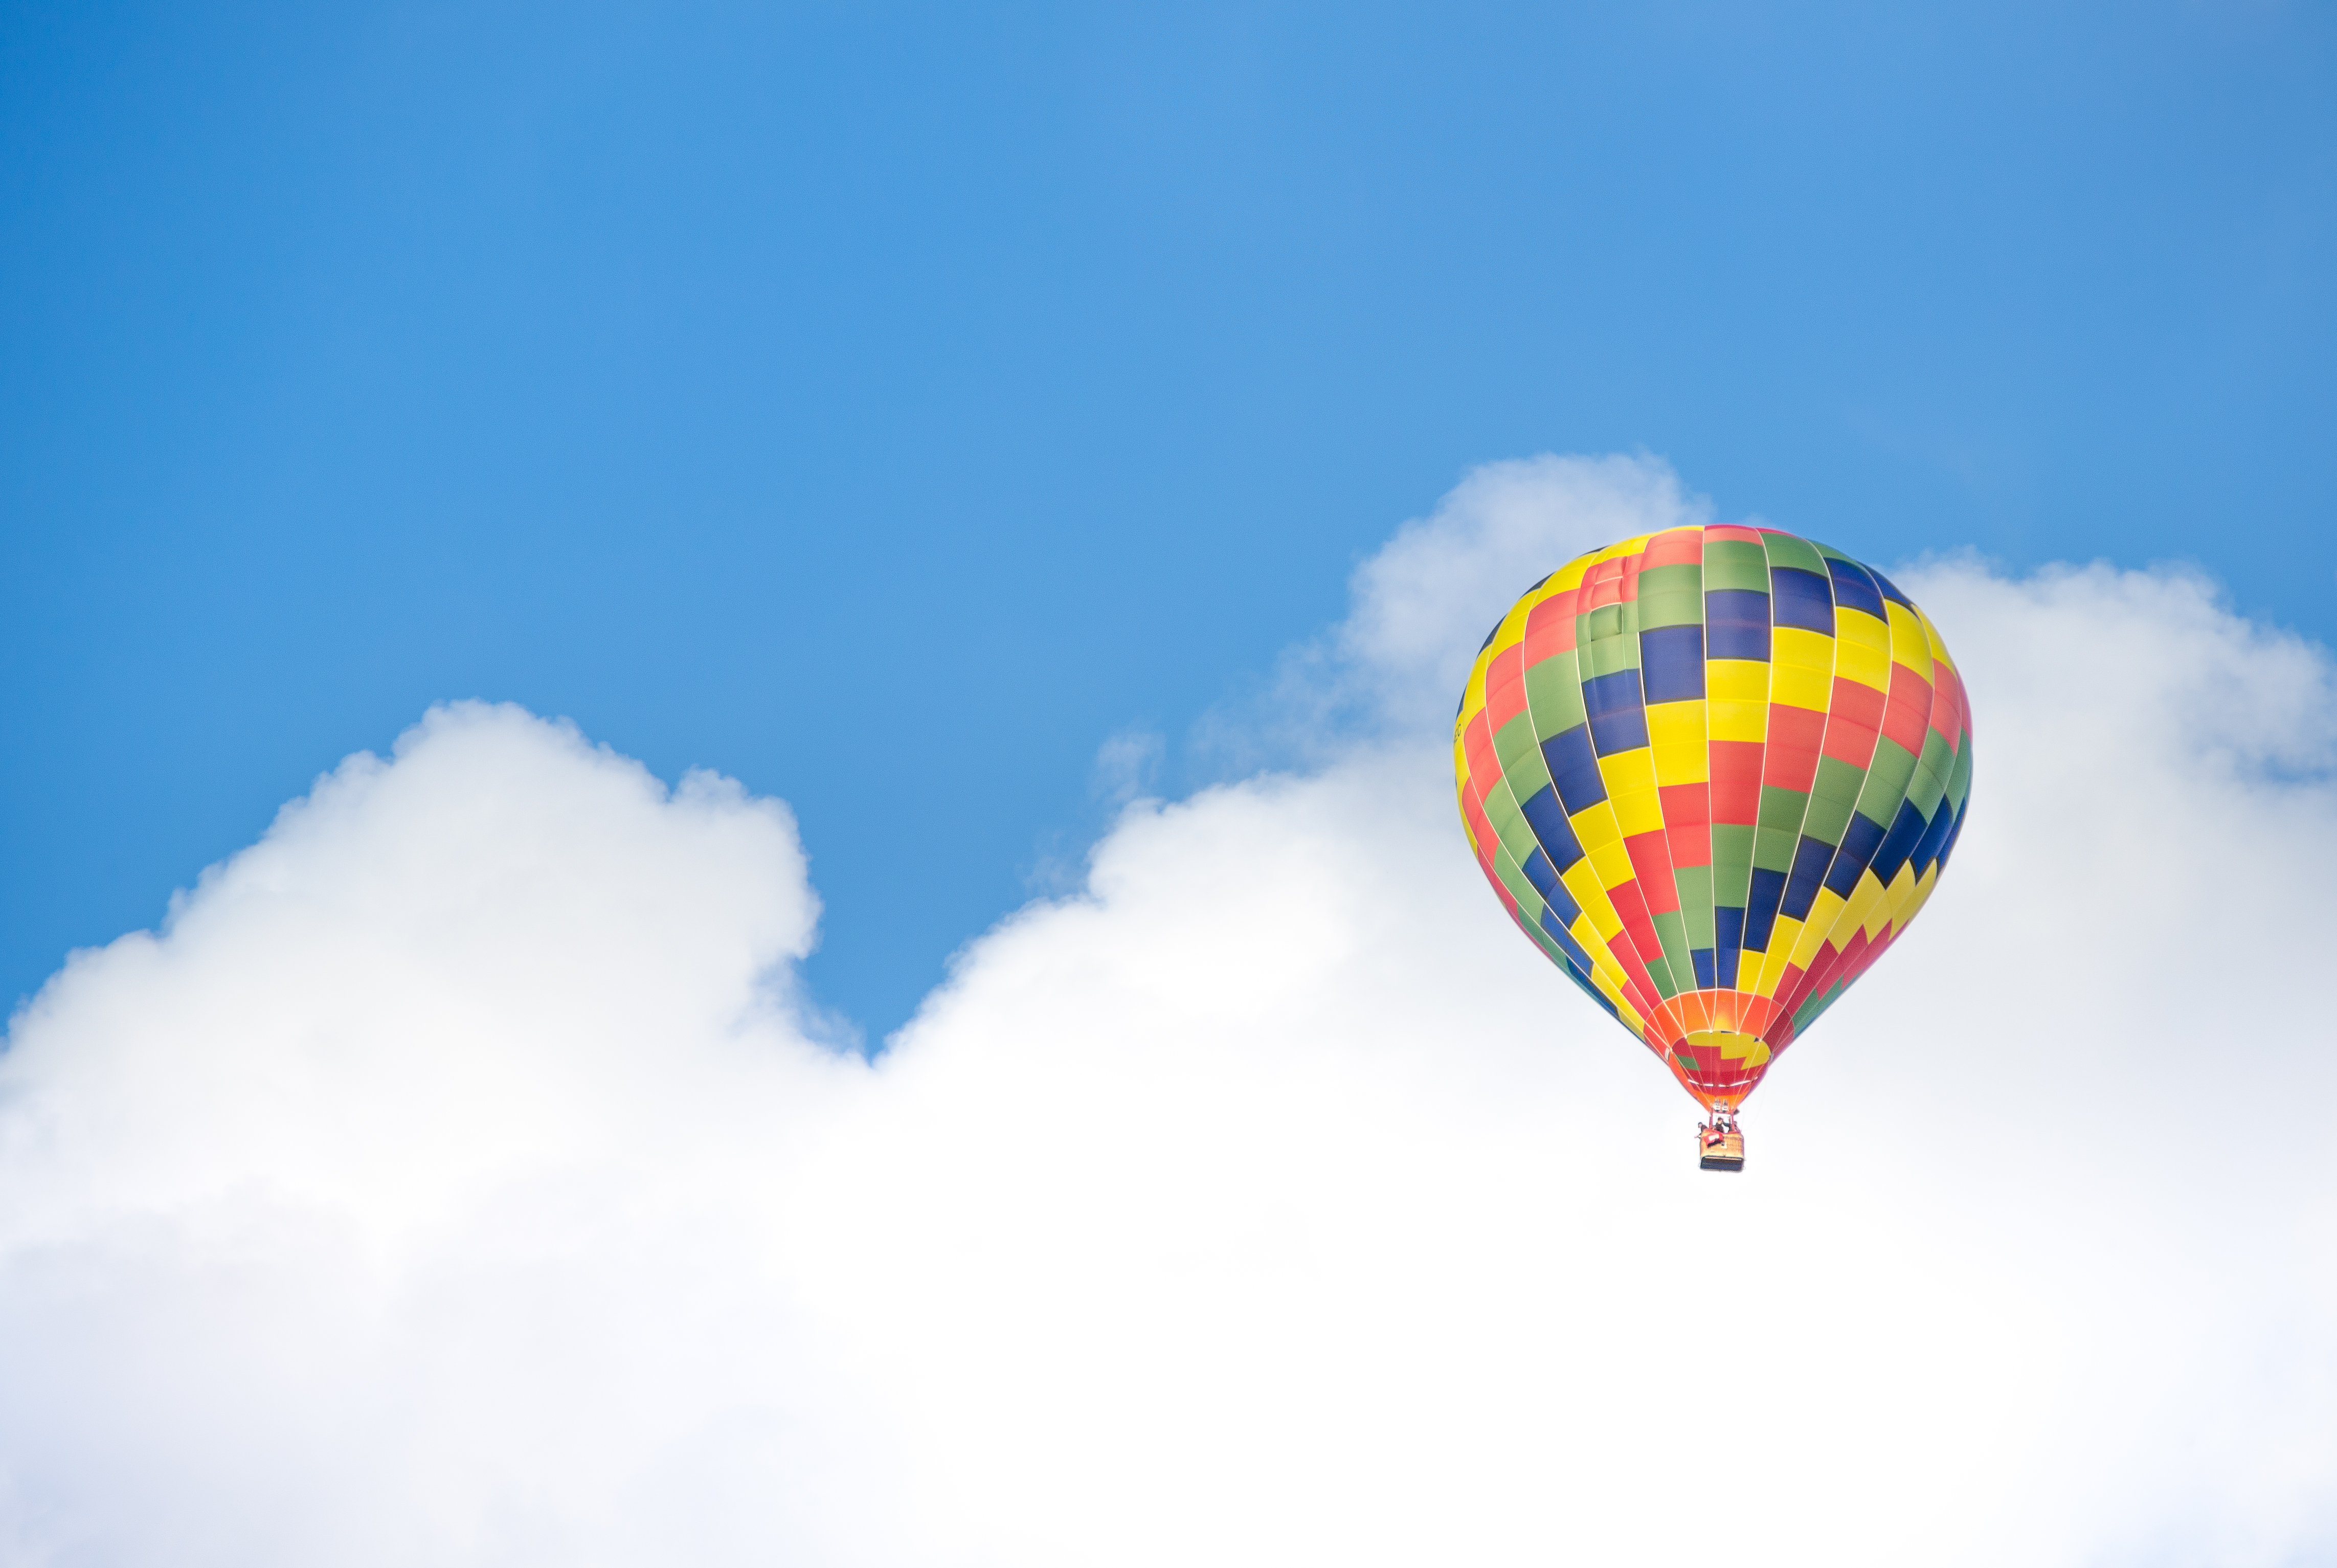 yellow blue and green air balloon flying near white clouds